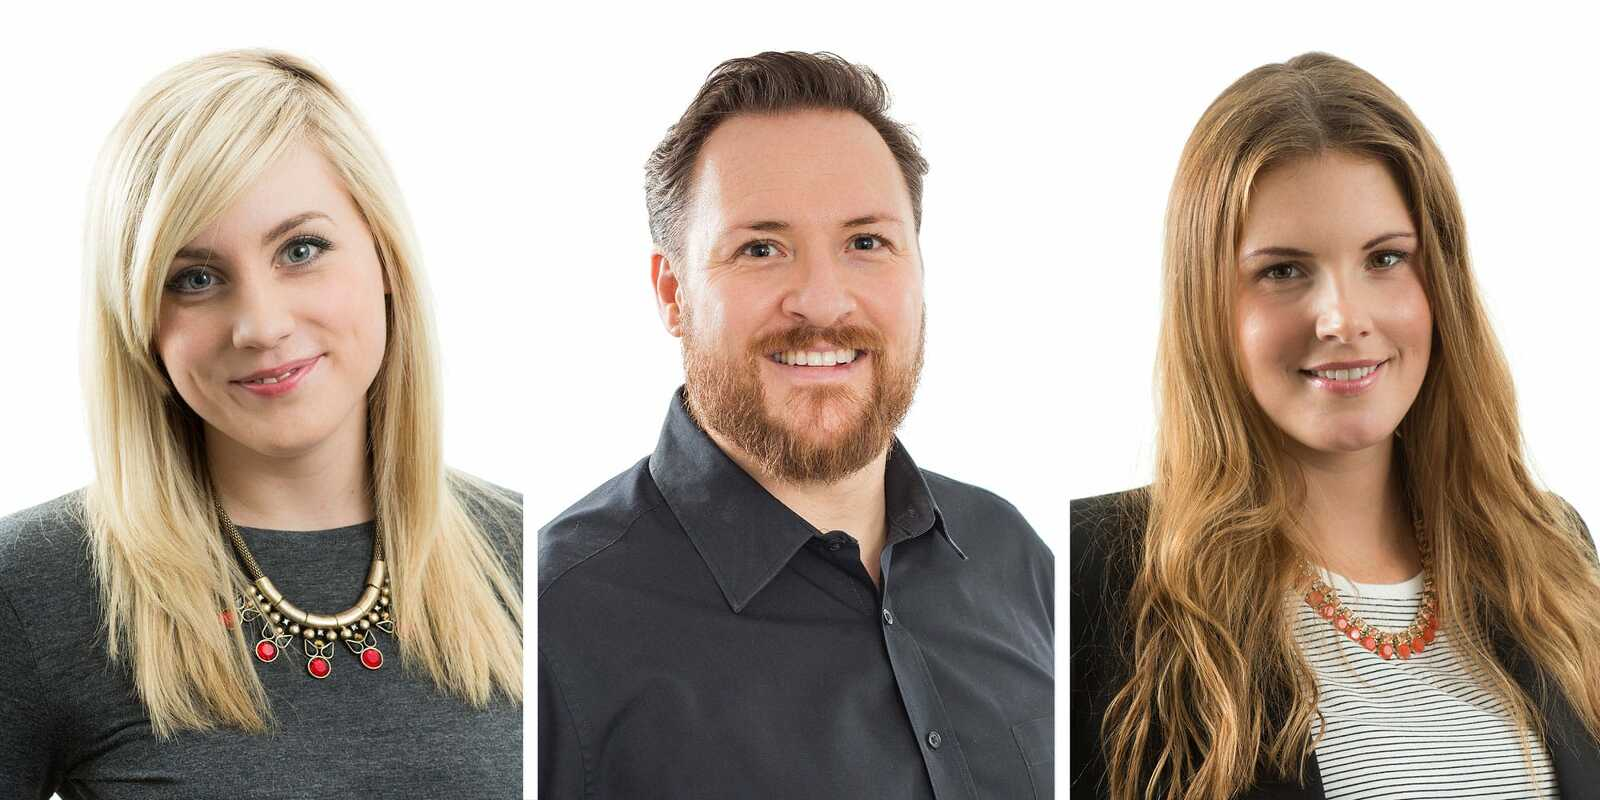 3 business people having a corporate headshot